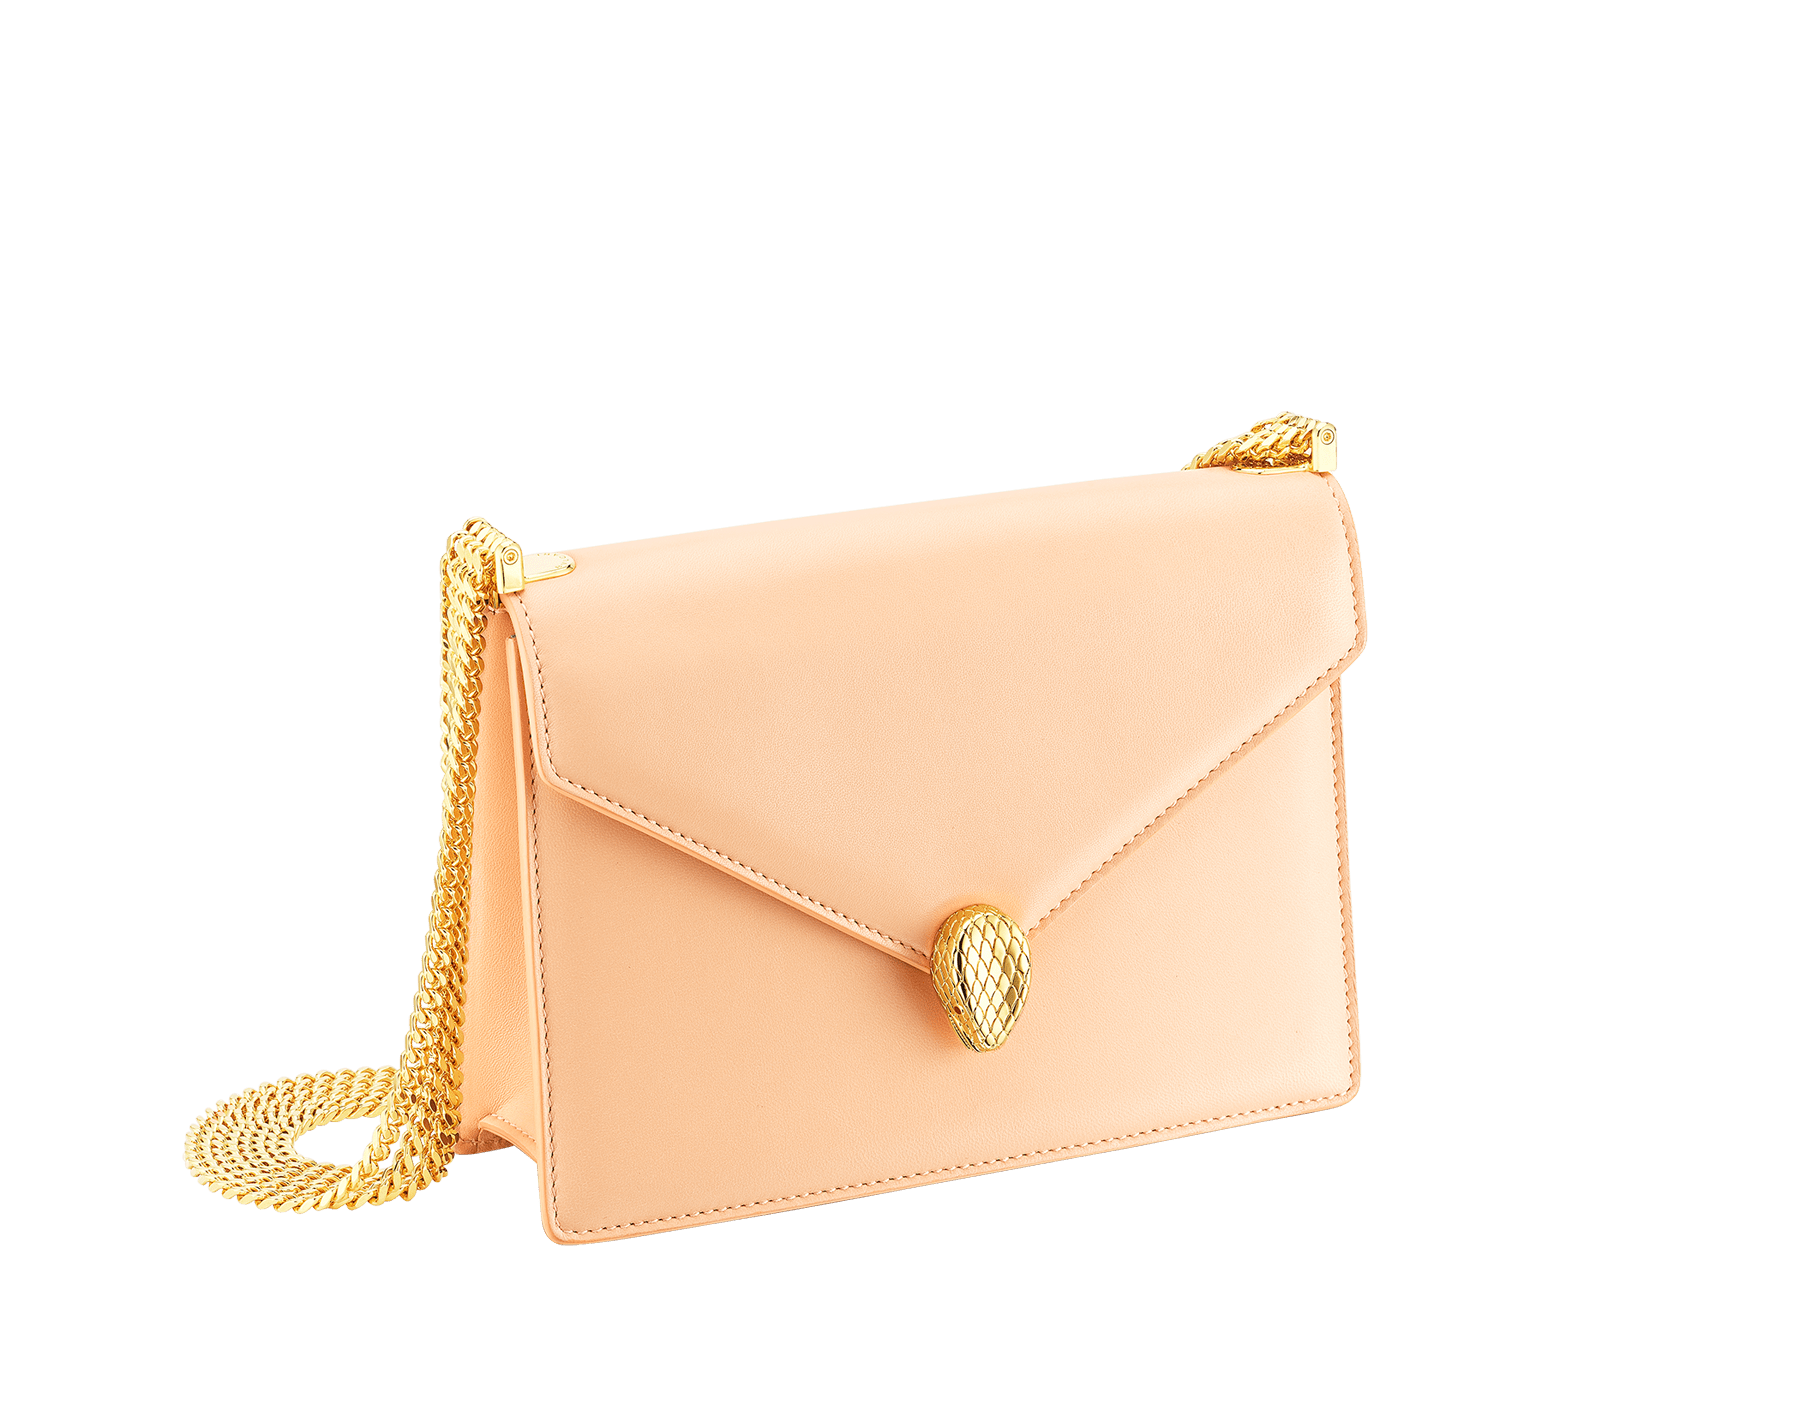 """Serpenti Forever"" multichain shoulder bag in peach ""Papier"" nappa leather, with Lavender Amethyst lilac nappa leather inner lining. New Serpenti head closure in gold-plated brass, finished with red enamel eyes. 1107-NP image 2"